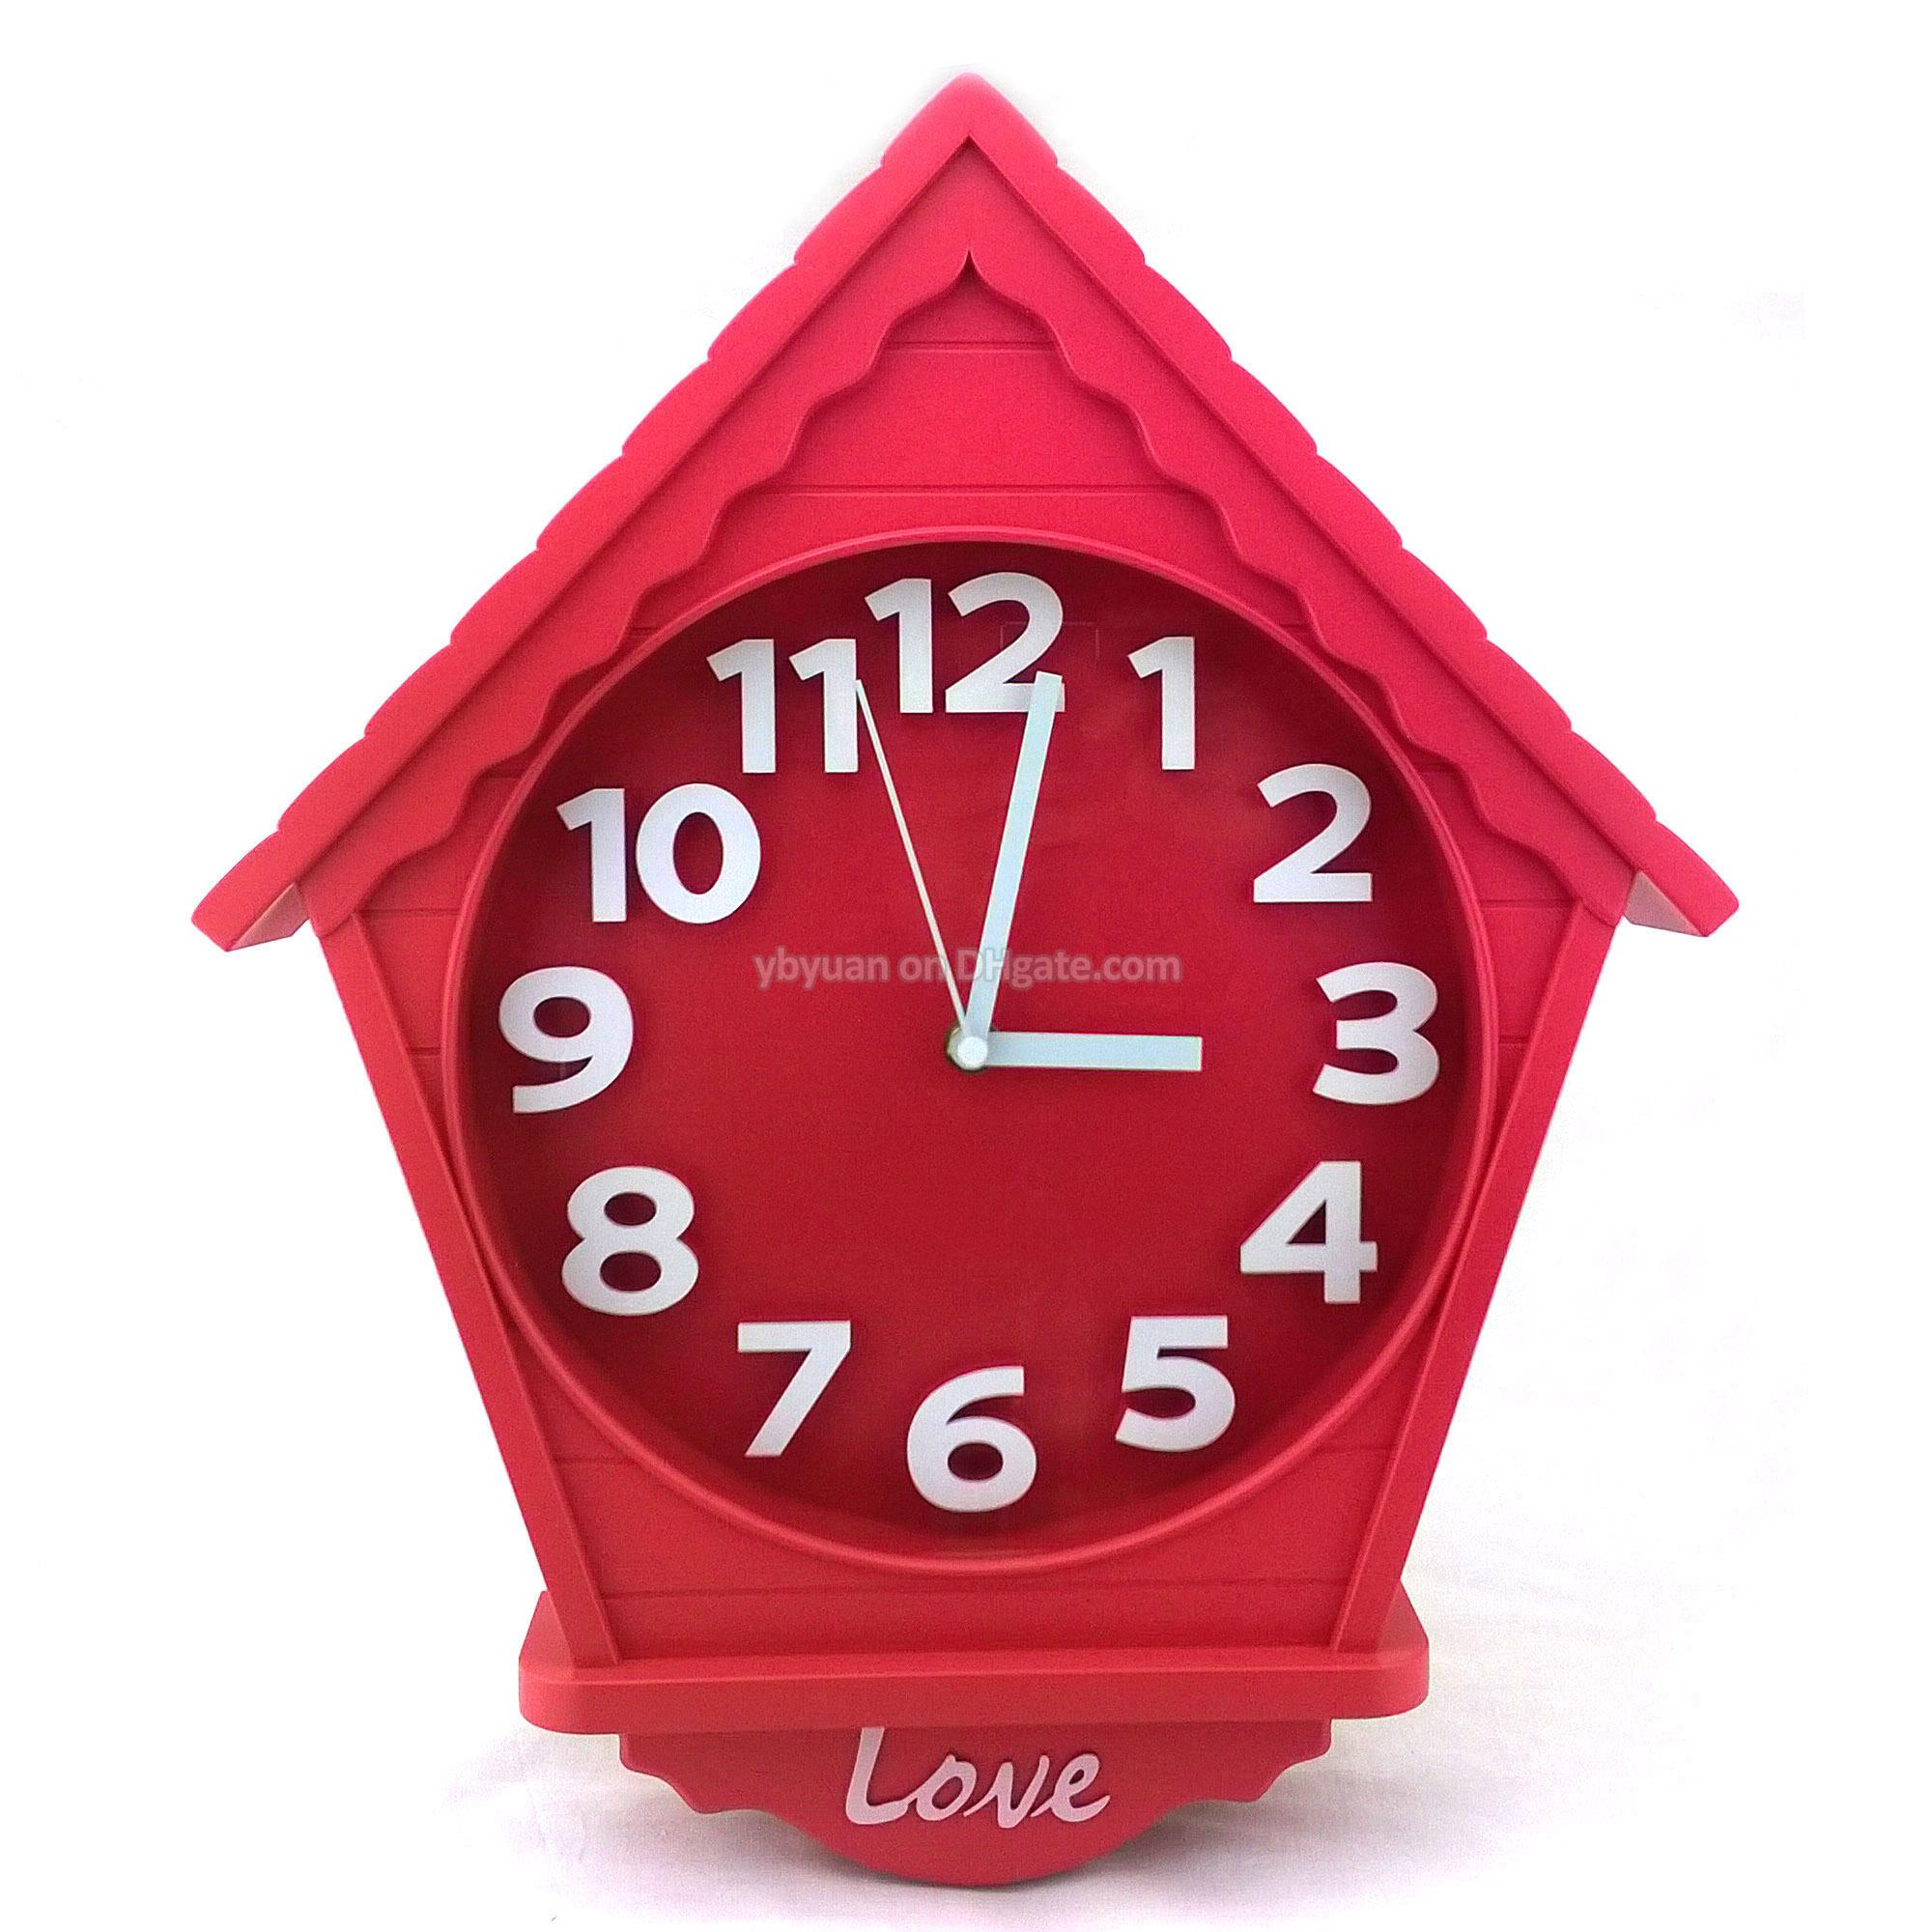 House shape wall clock decorative cabin type timepiece creative house shape wall clock decorative cabin type timepiece creative living room silent quartz cottage style watch home decoration decorative wall clock house amipublicfo Choice Image